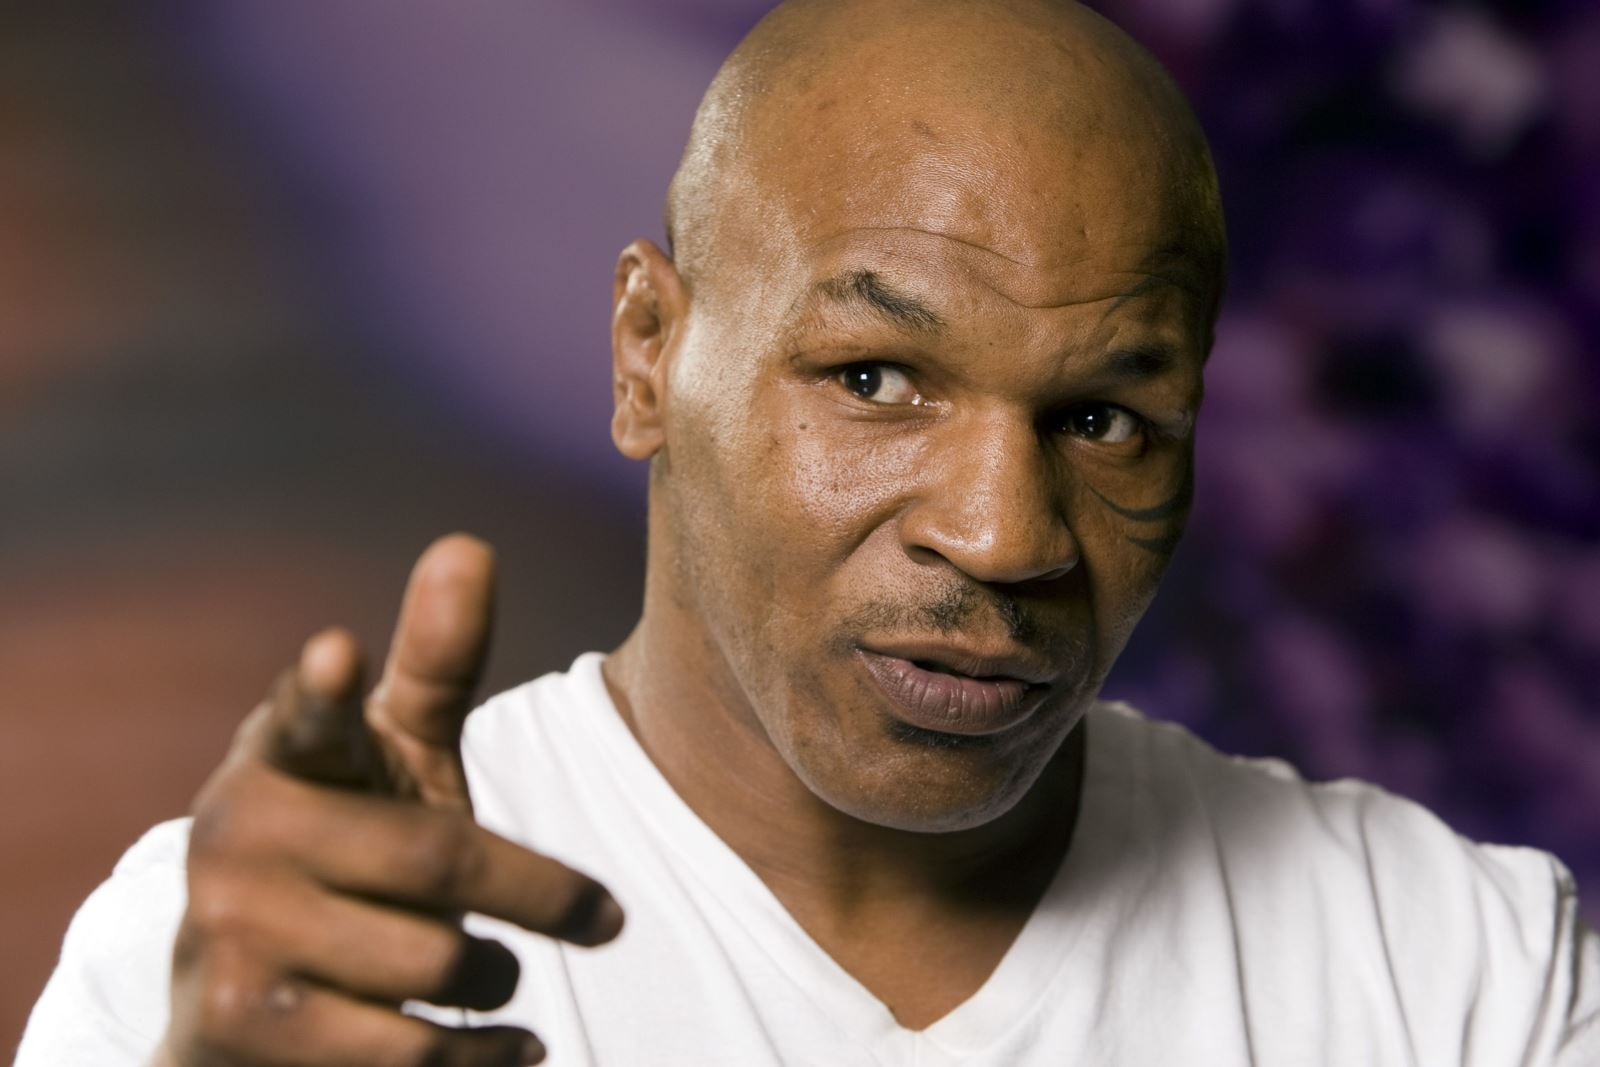 Mike Tyson goes head to head with advisor